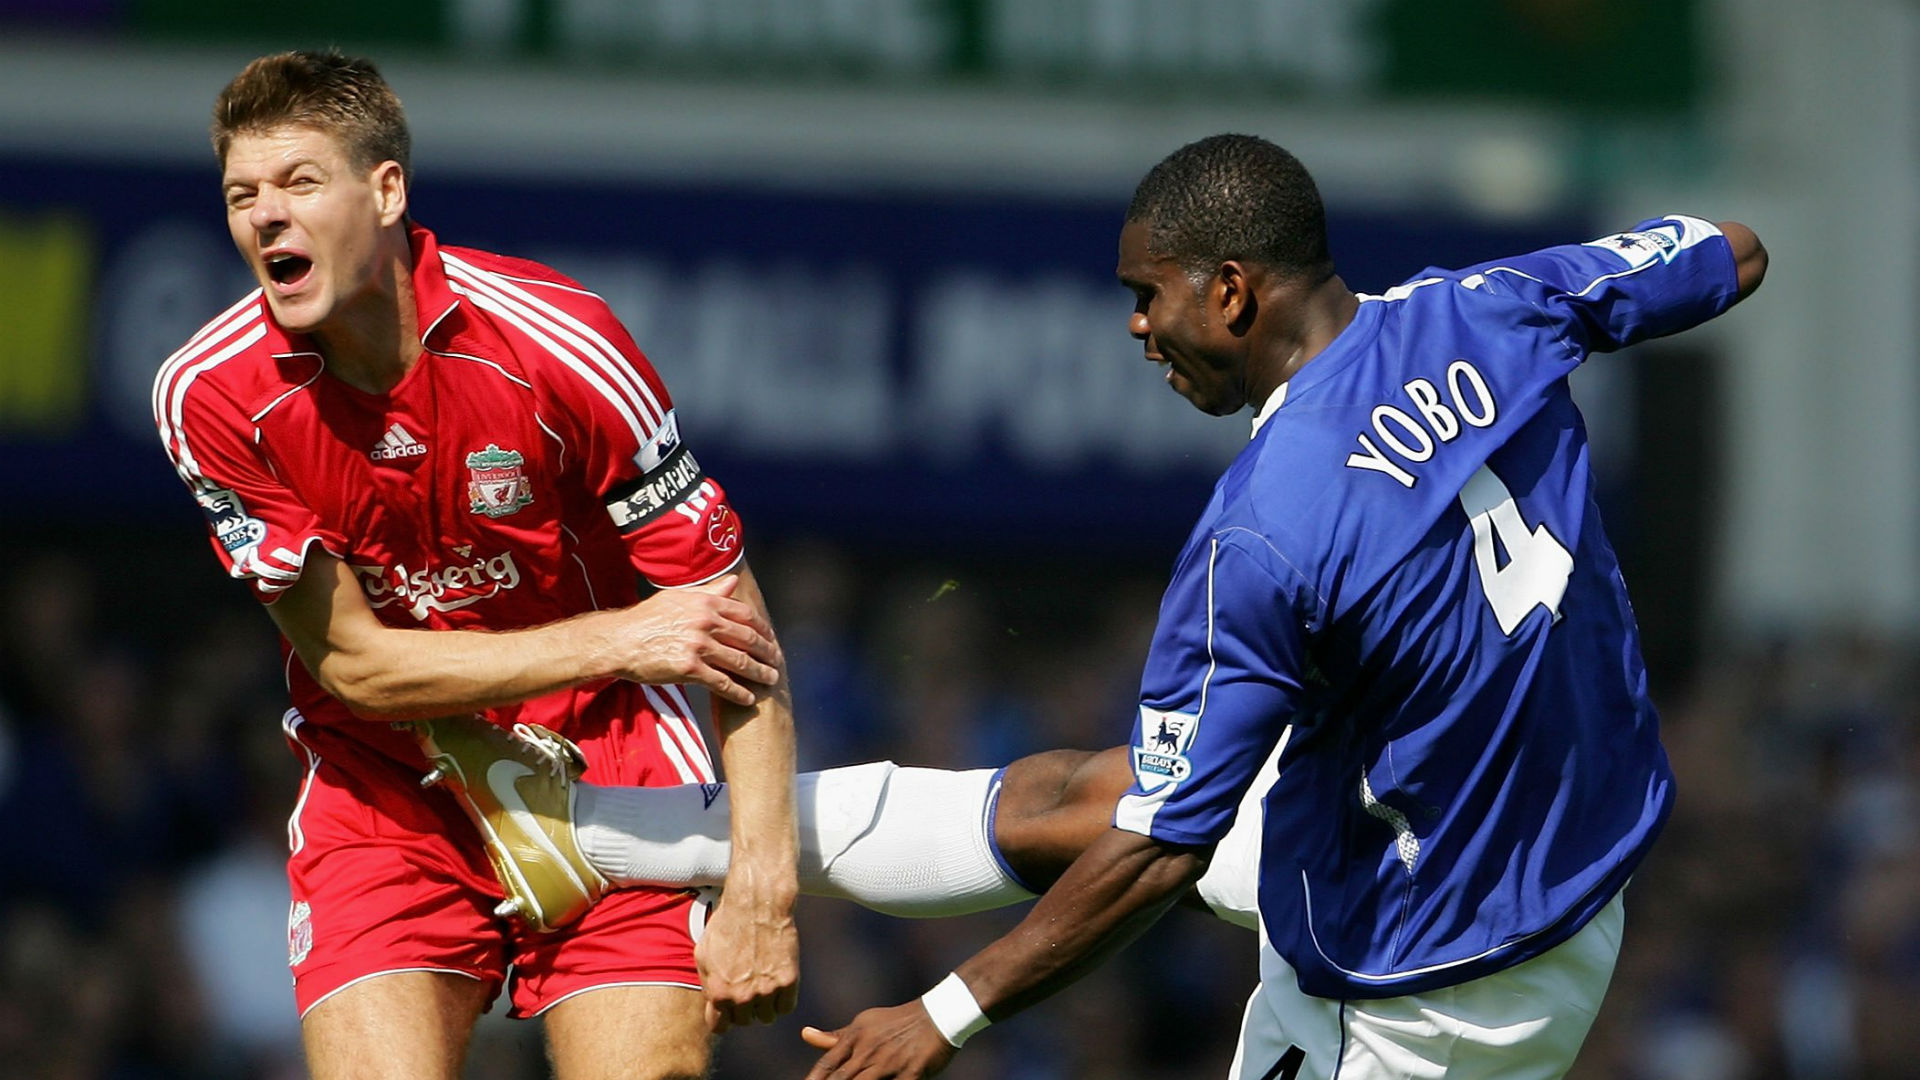 Former Everton star Yobo names Keane ahead of Drogba and Henry as his toughest opponent